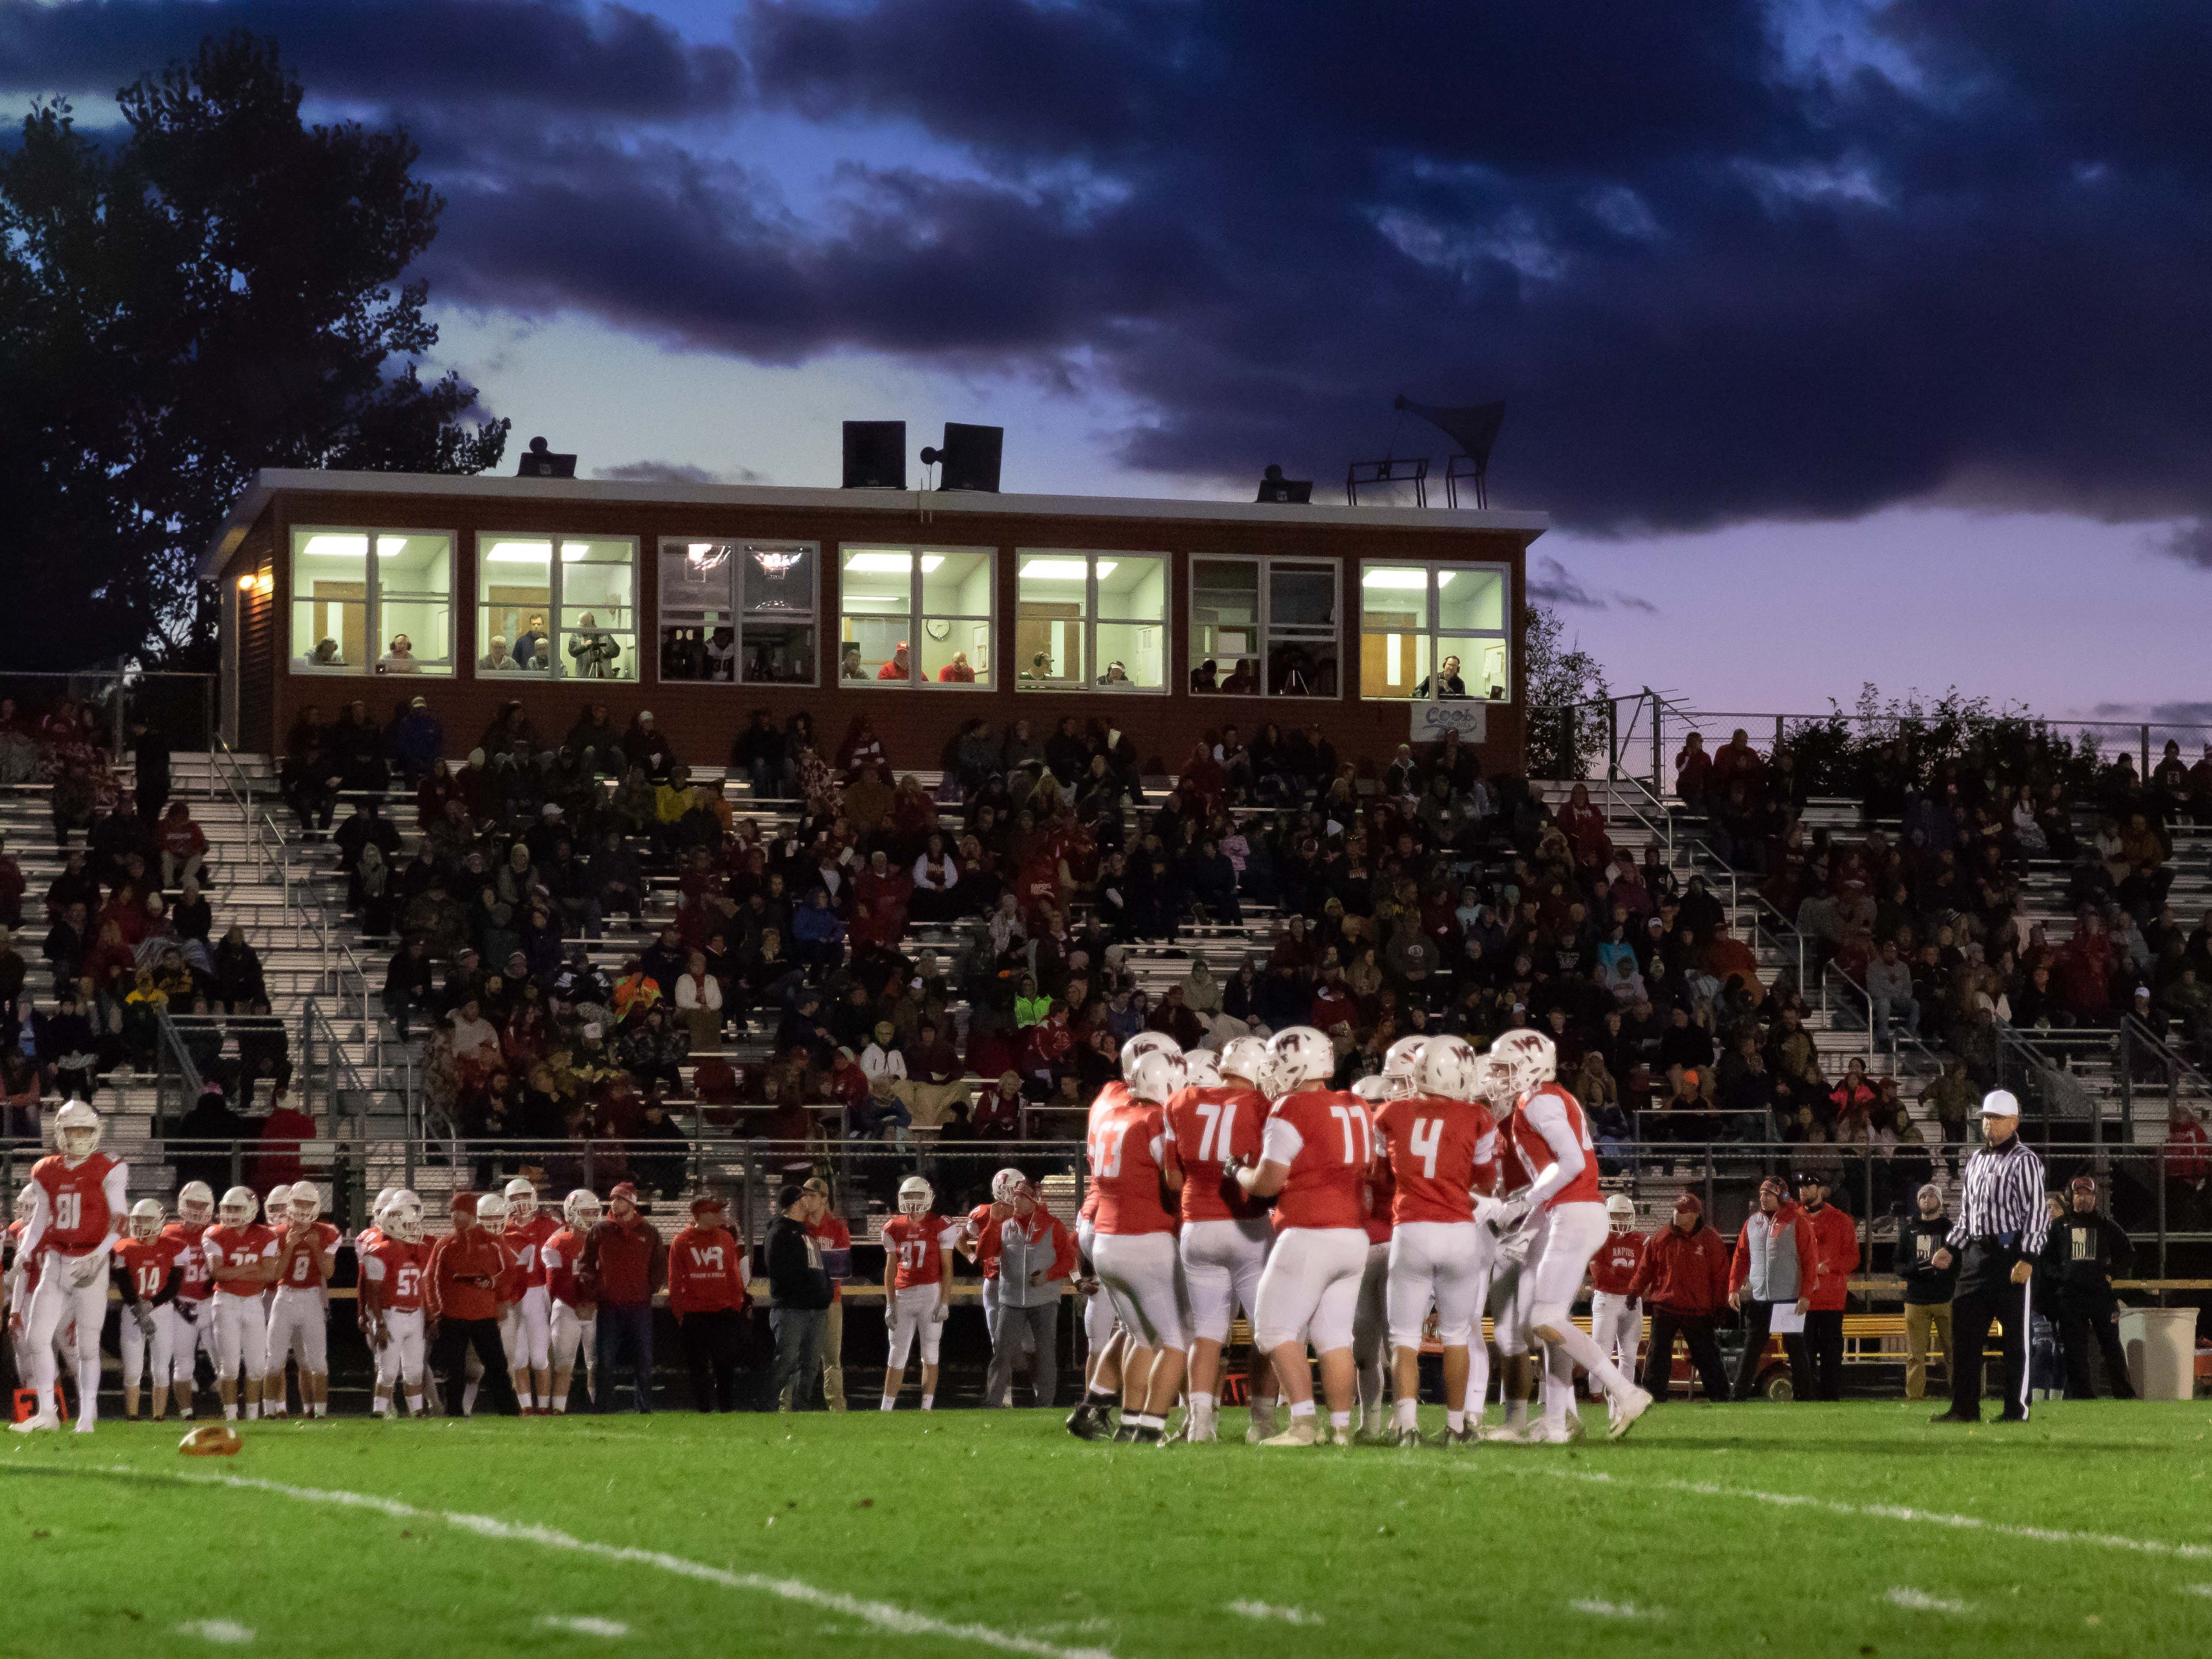 Wisconsin Rapids edged Wausau West 26-20 in a Valley Football Association game on Friday at South Wood County 2000 field. It also was the Raiders' Homecoming.